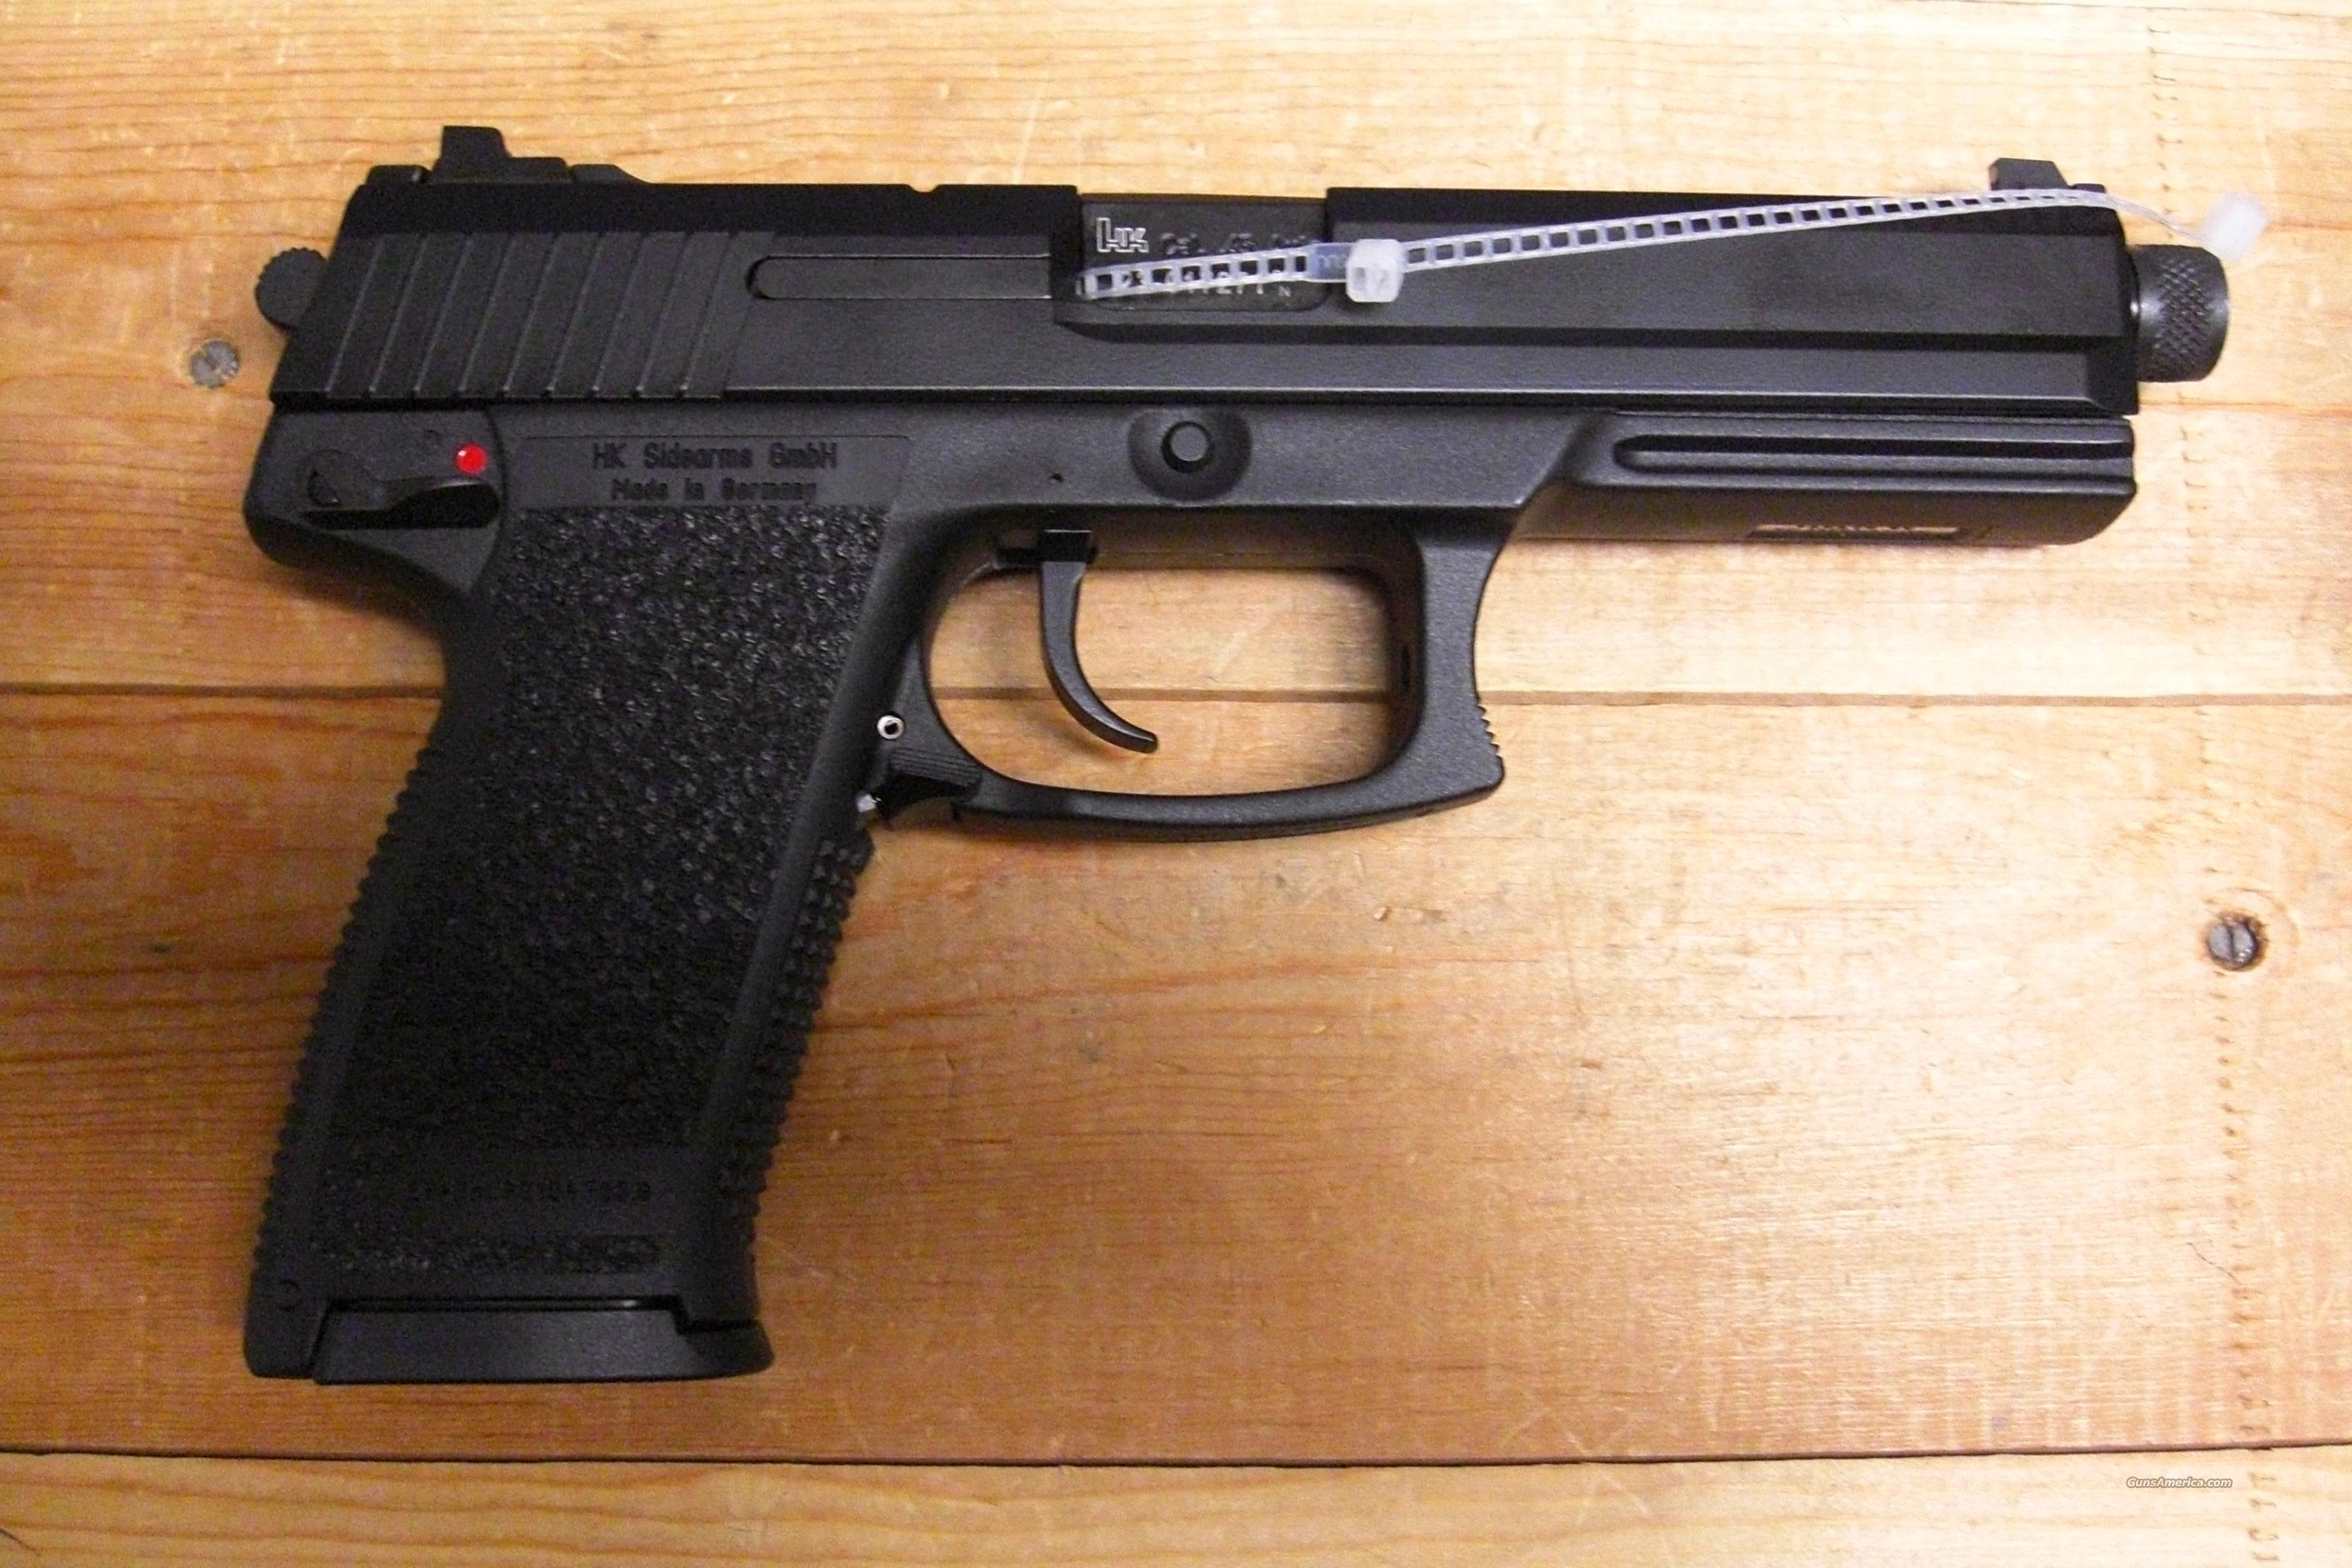 Mark 23 V1 w/threaded barrel  Guns > Pistols > Heckler & Koch Pistols > Polymer Frame